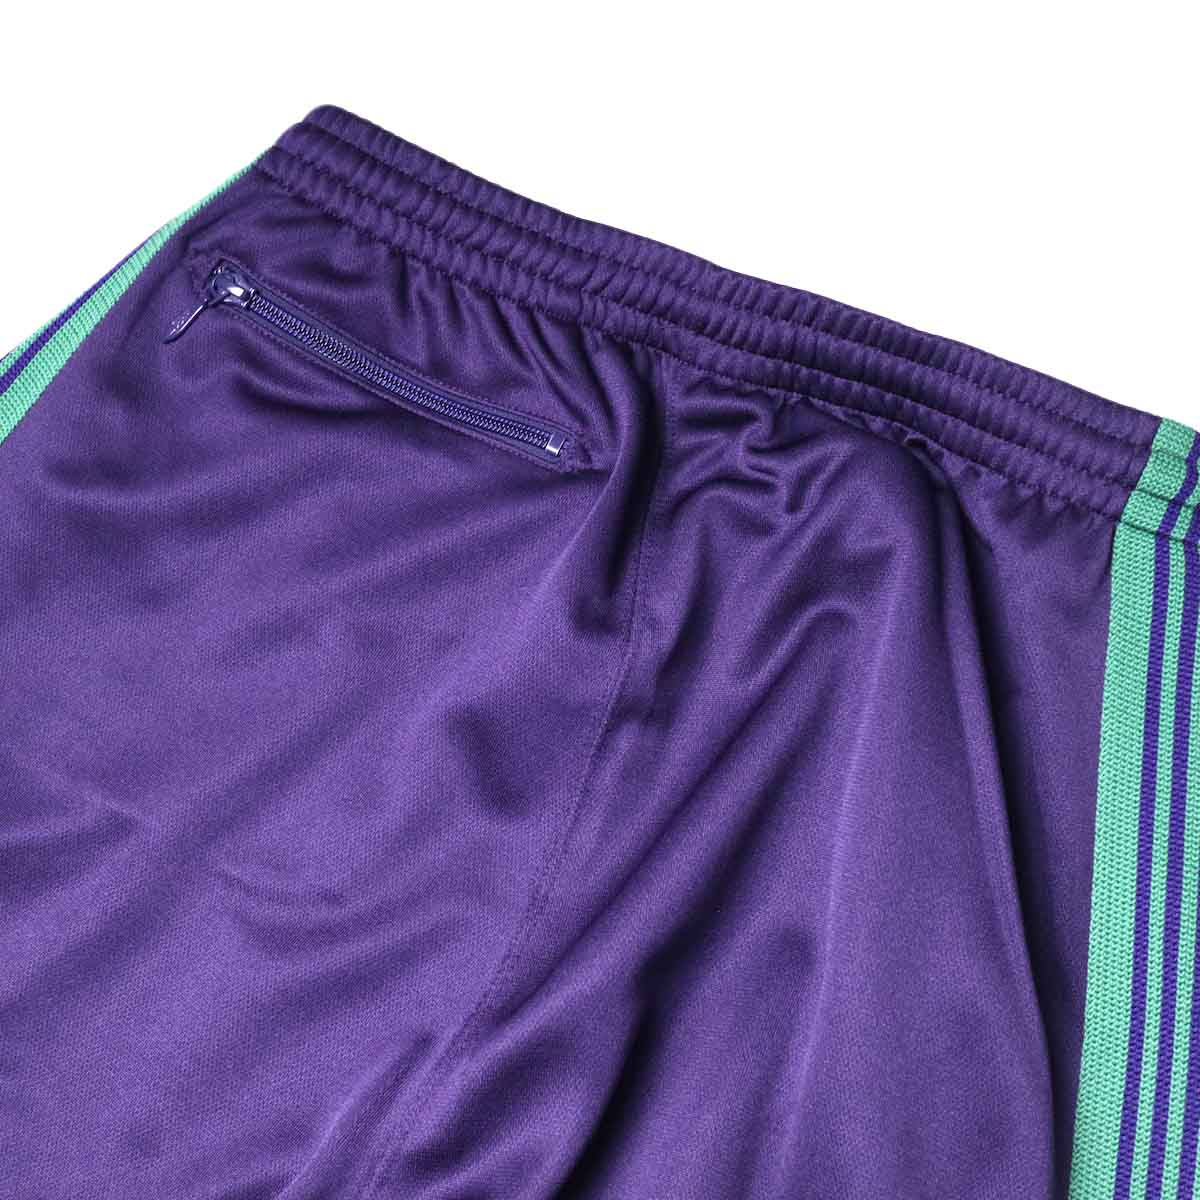 Needles / H.D. TRACK PANT - POLY SMOOTH (Eggplant)ヒップポケット